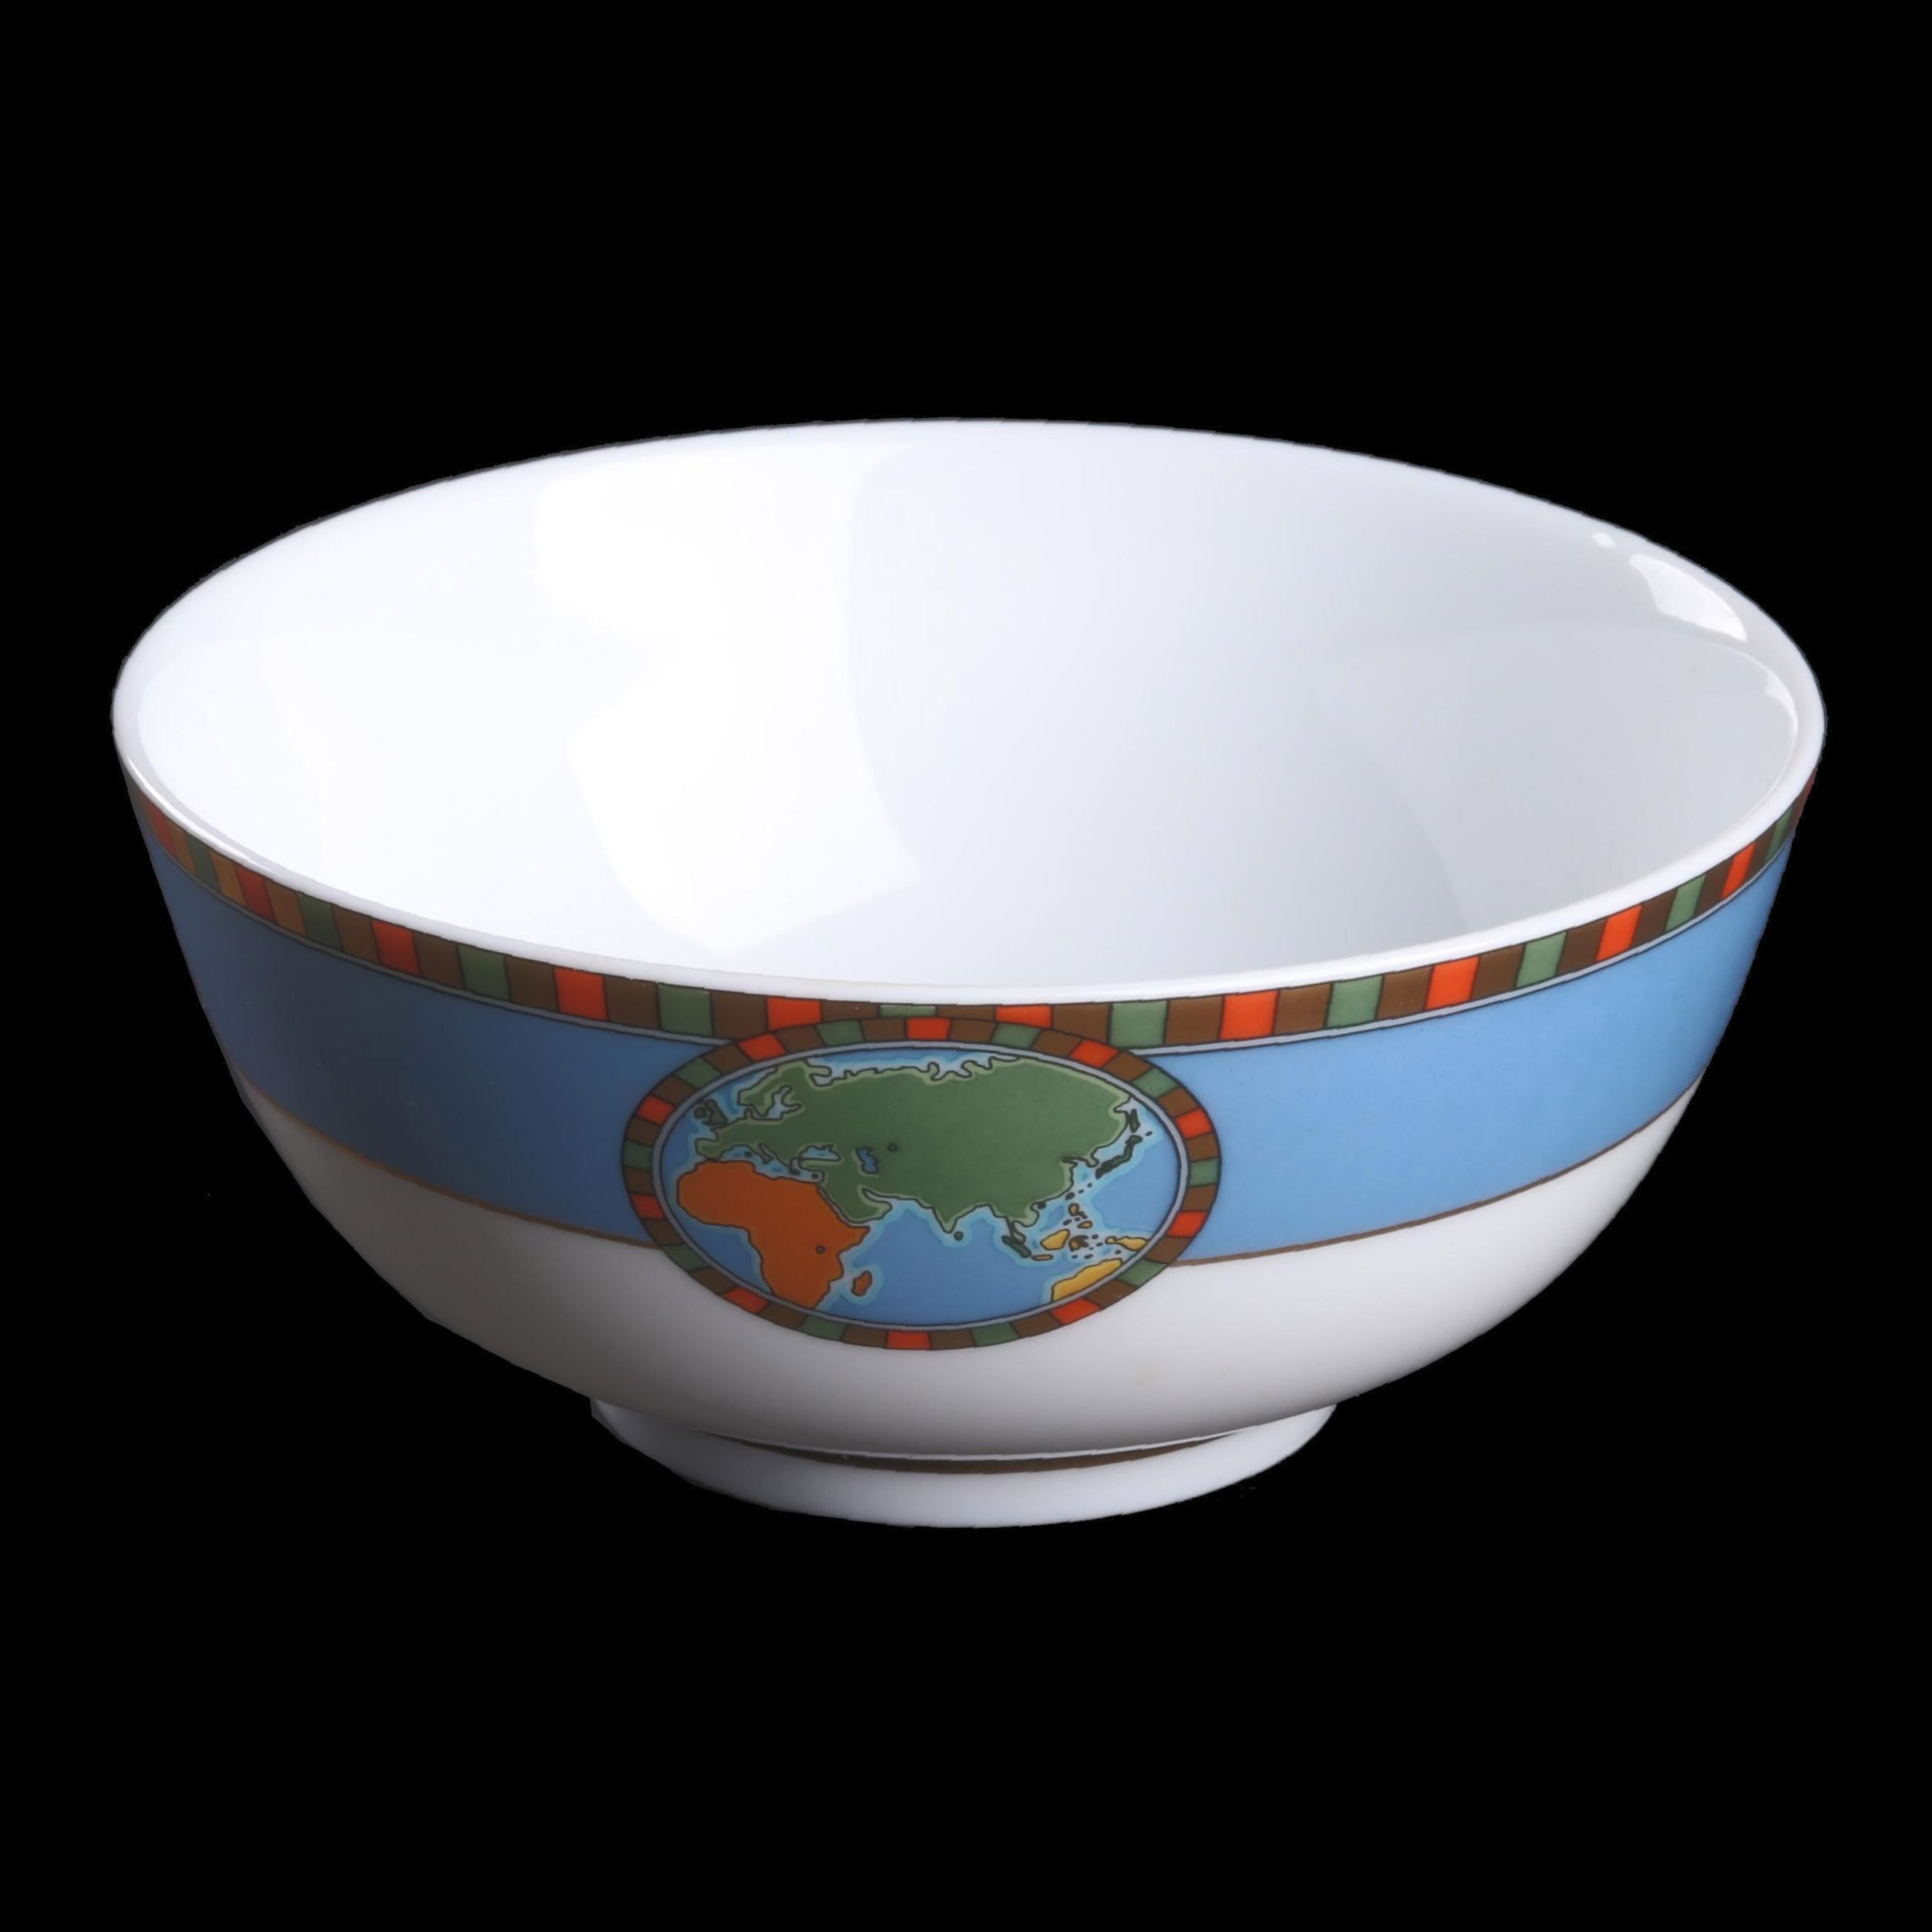 Tiffany & Co. Map Motif Porcelain Dessert Bowl